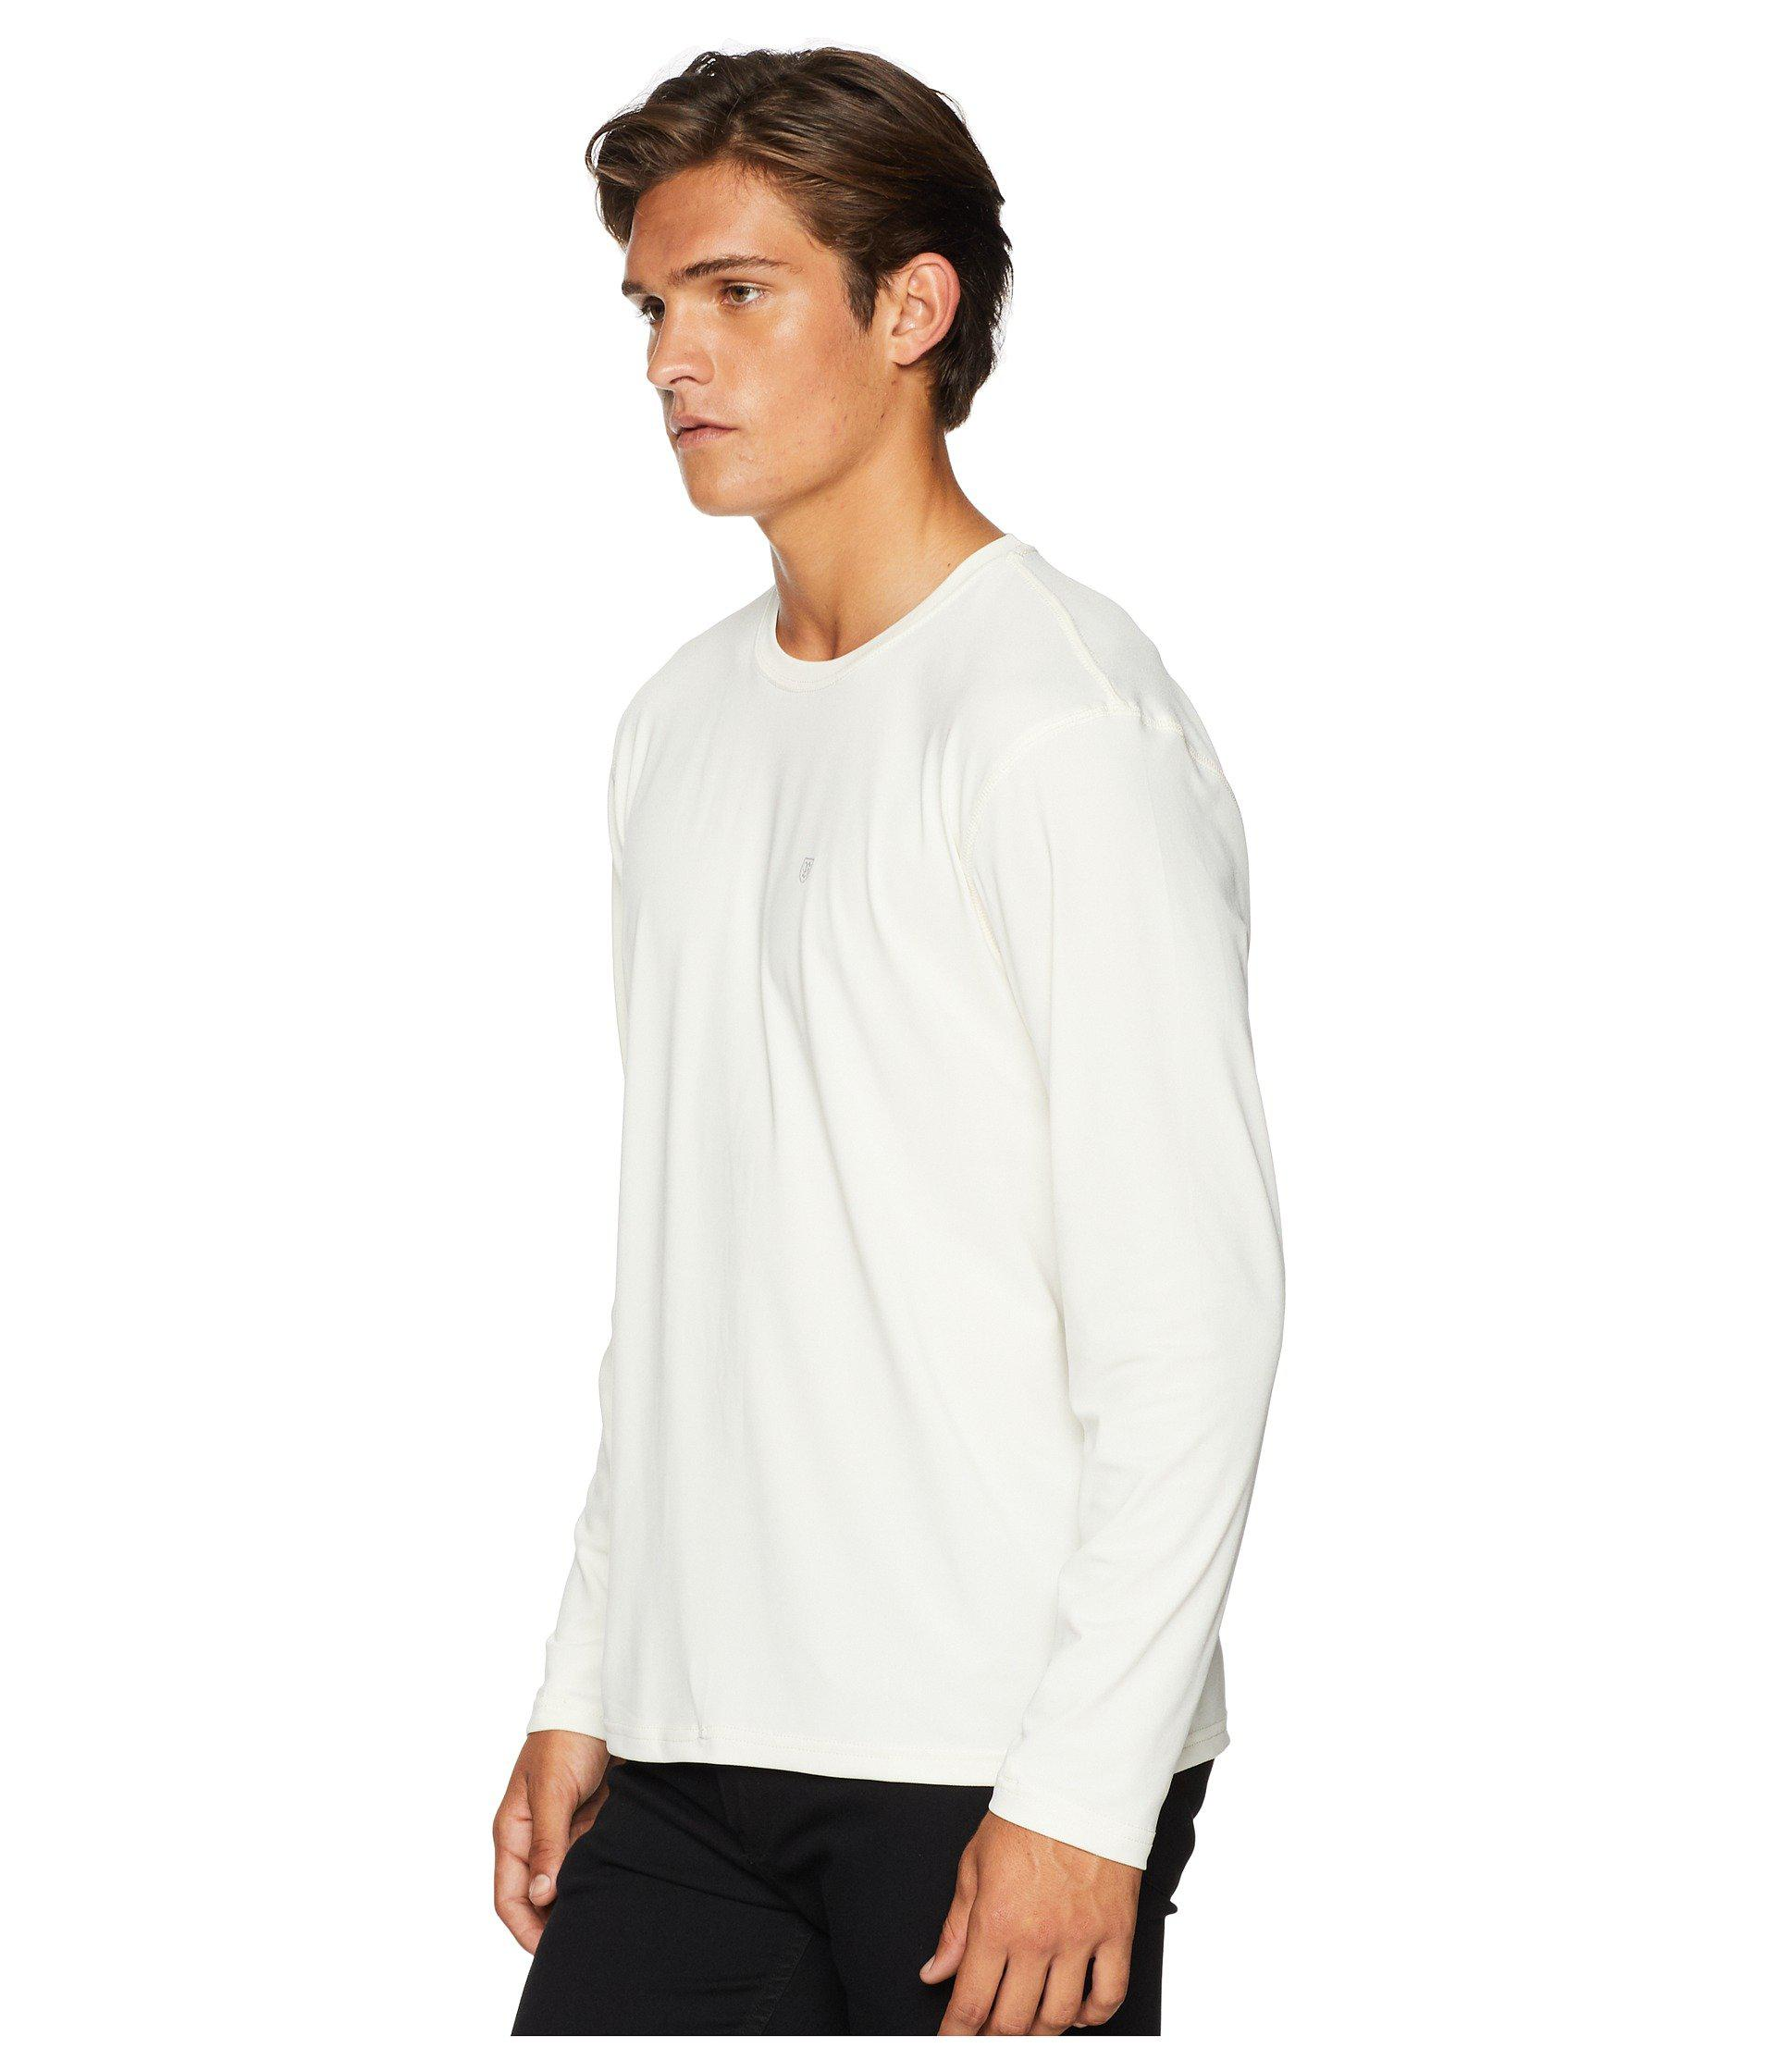 2377b8b9ae327 ... germany lyst brixton trek long sleeve knit navy mens clothing in white  for men 8a9be fc014